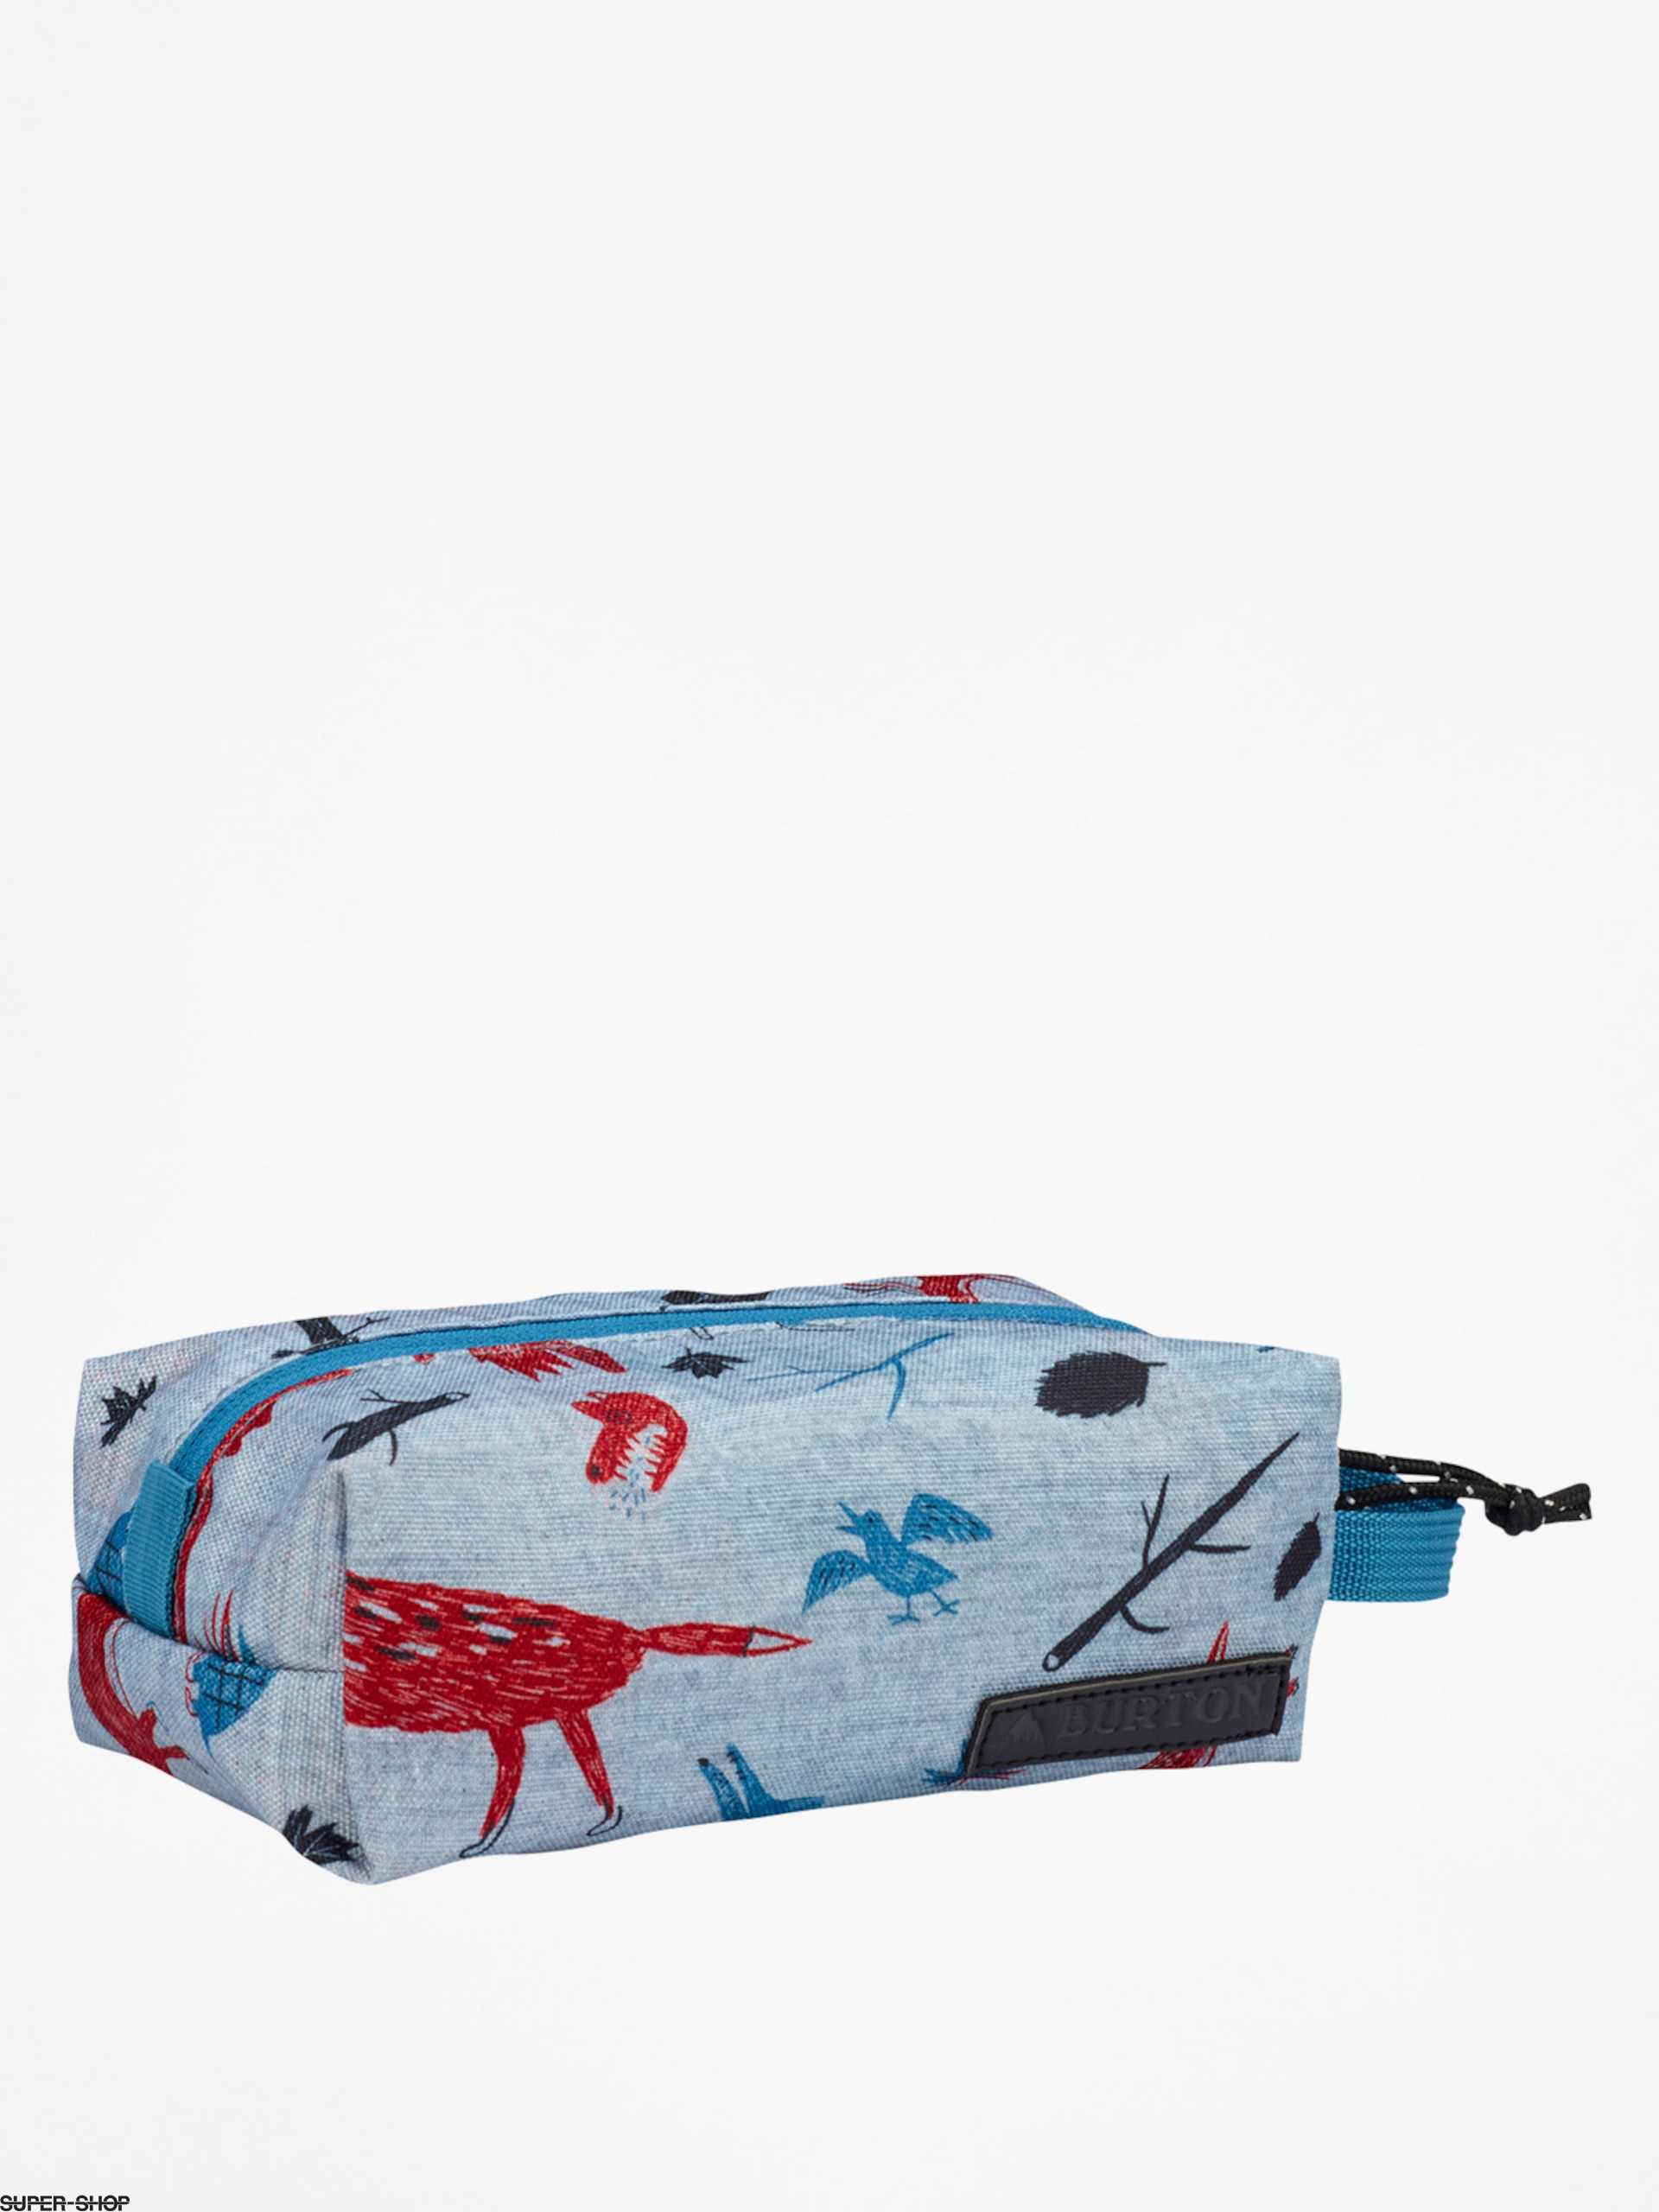 Burton Pencil case Accessory Case (big bad wolf print)